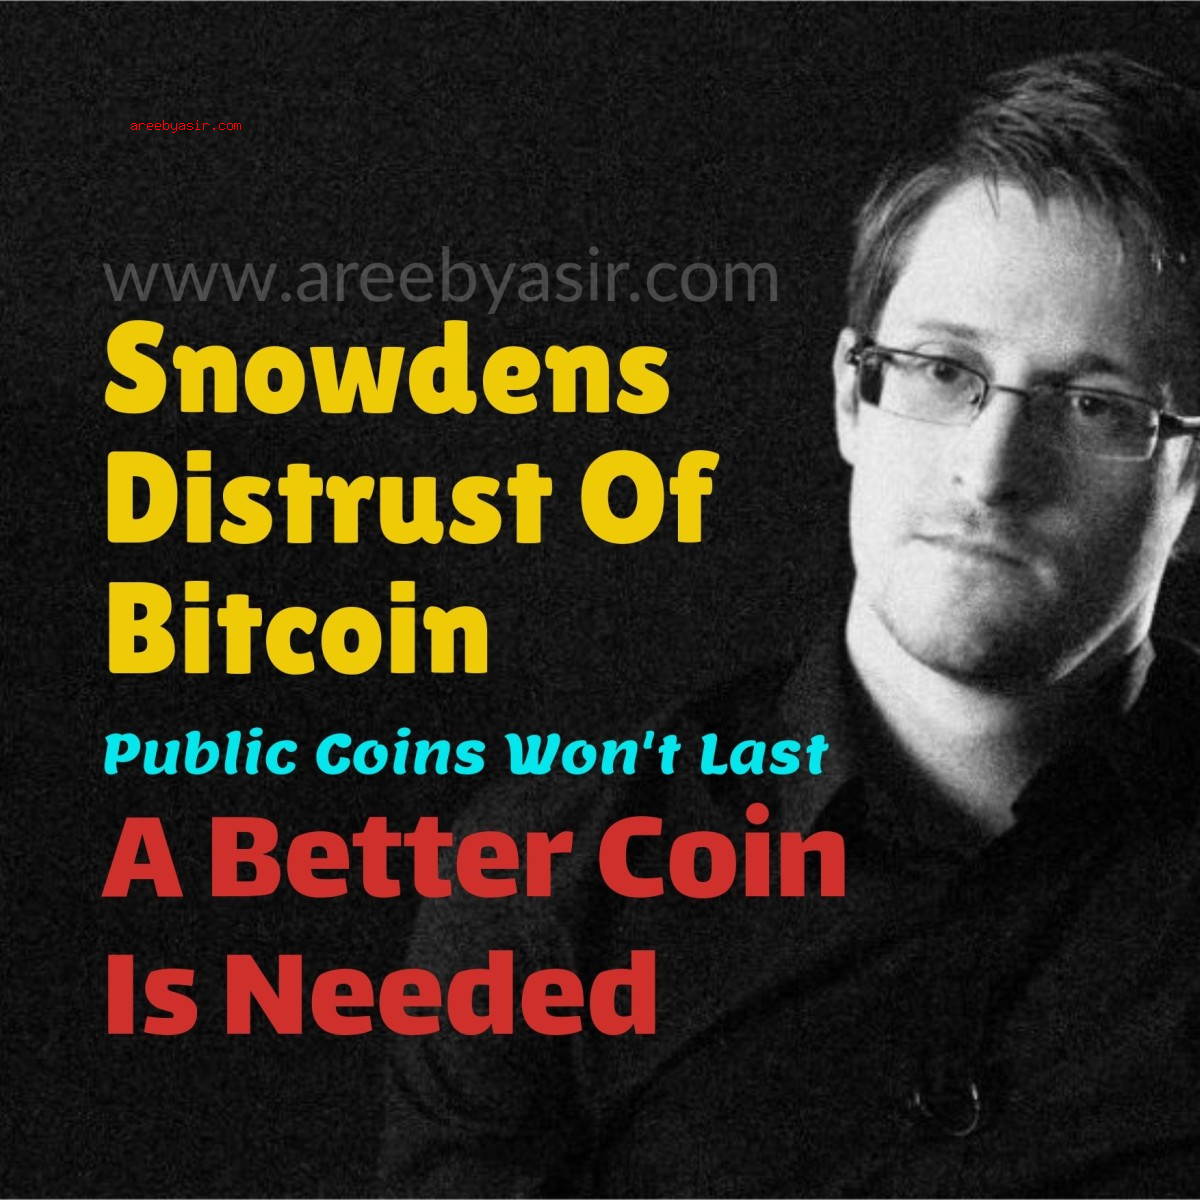 Edward Snowden Says Bitcoin's Downfall Is Public Ledger